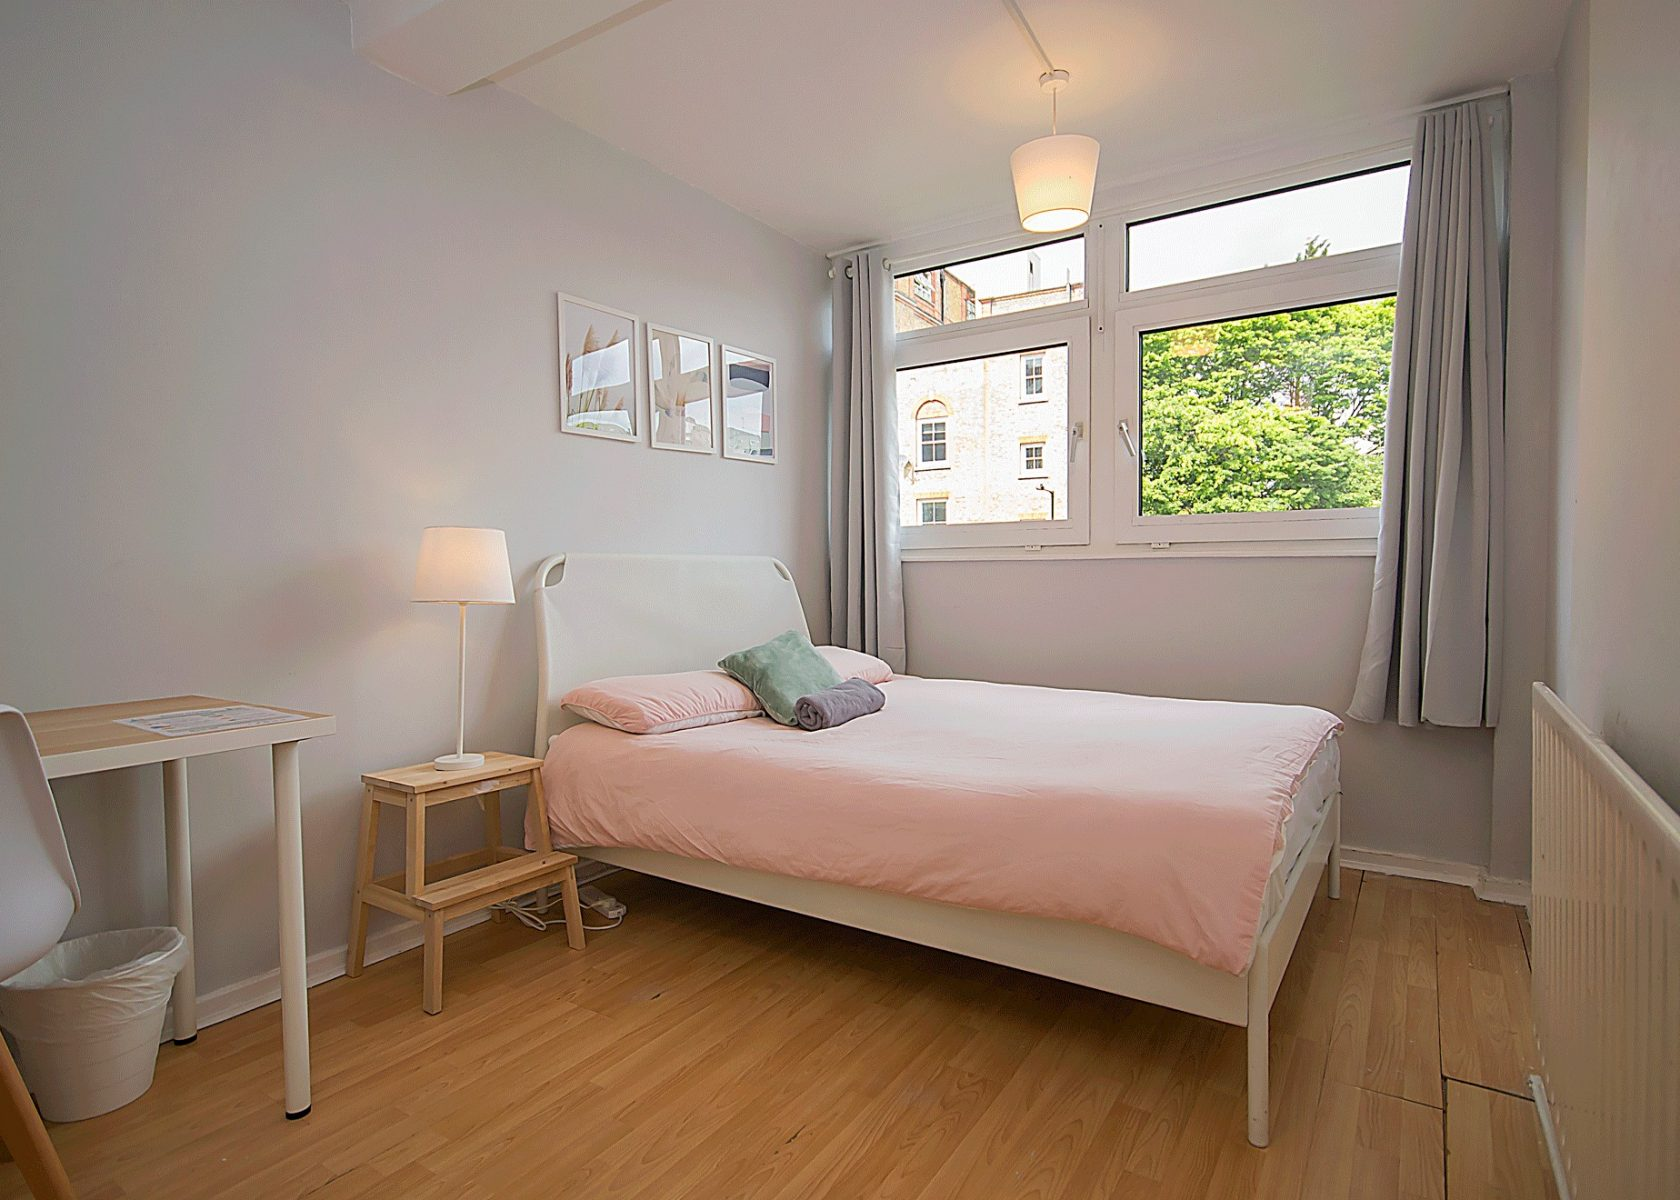 PRIVATE DOUBLE ROOM in Hanbury Brick Lane